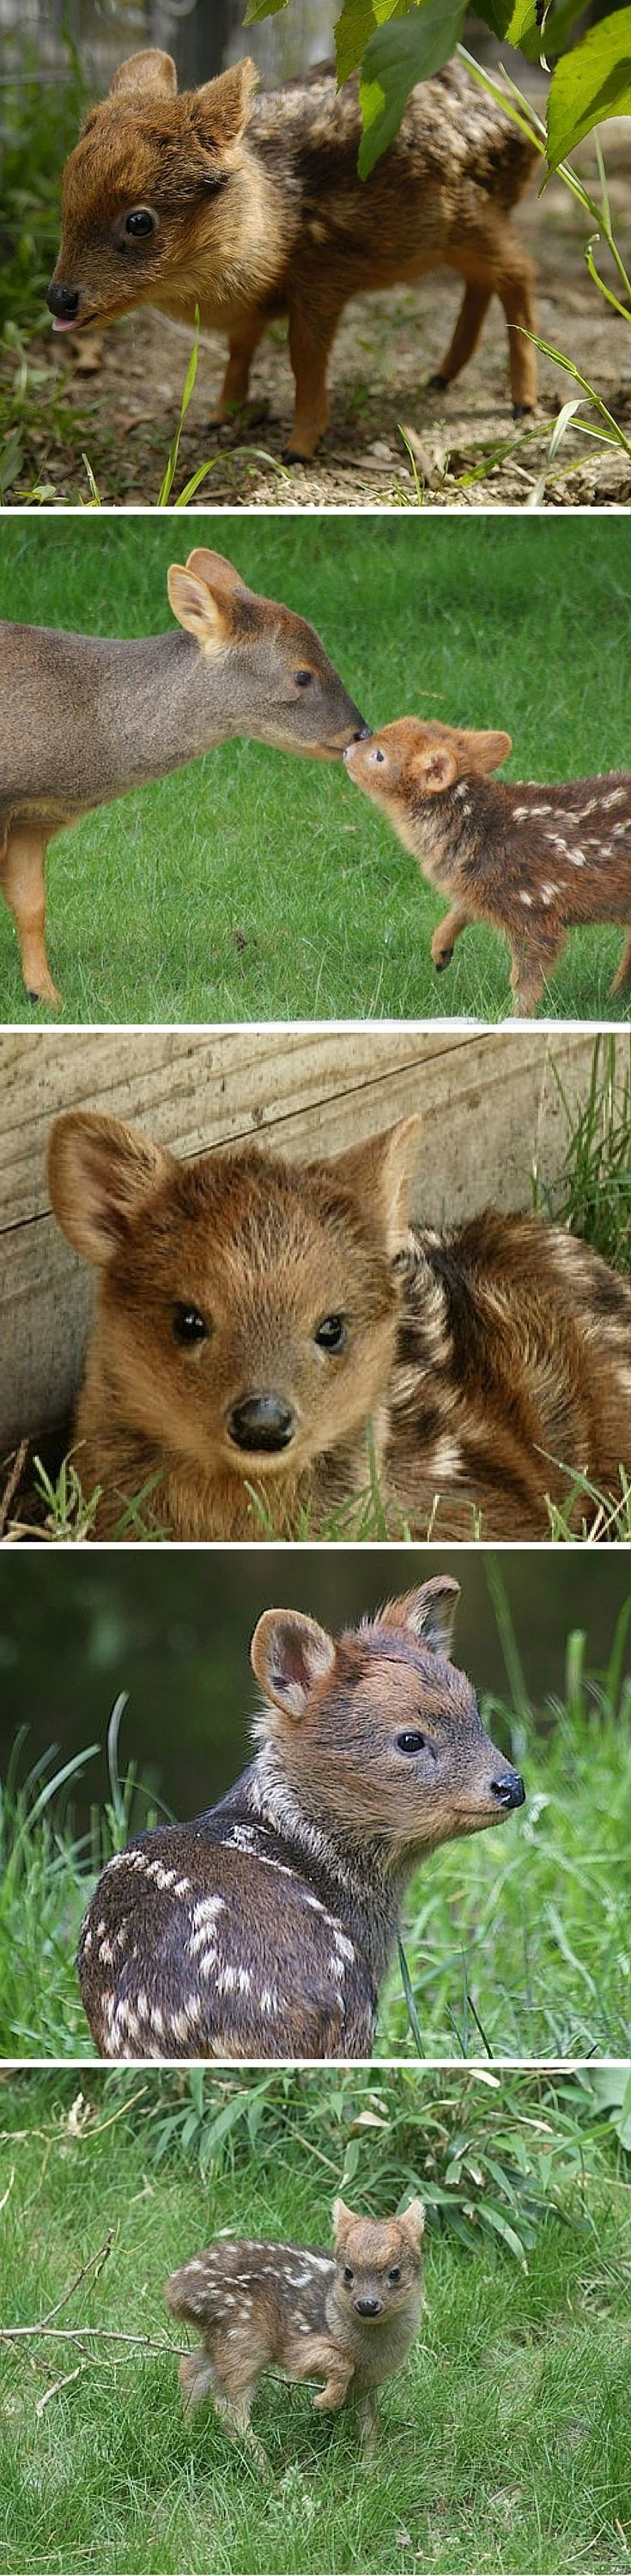 At just 12 to 14 inches high at the shoulder when fully grown pudus are the world's smallest deer species.  But why stop at five when you can have 10? More pictures of baby pudus at the link. :)